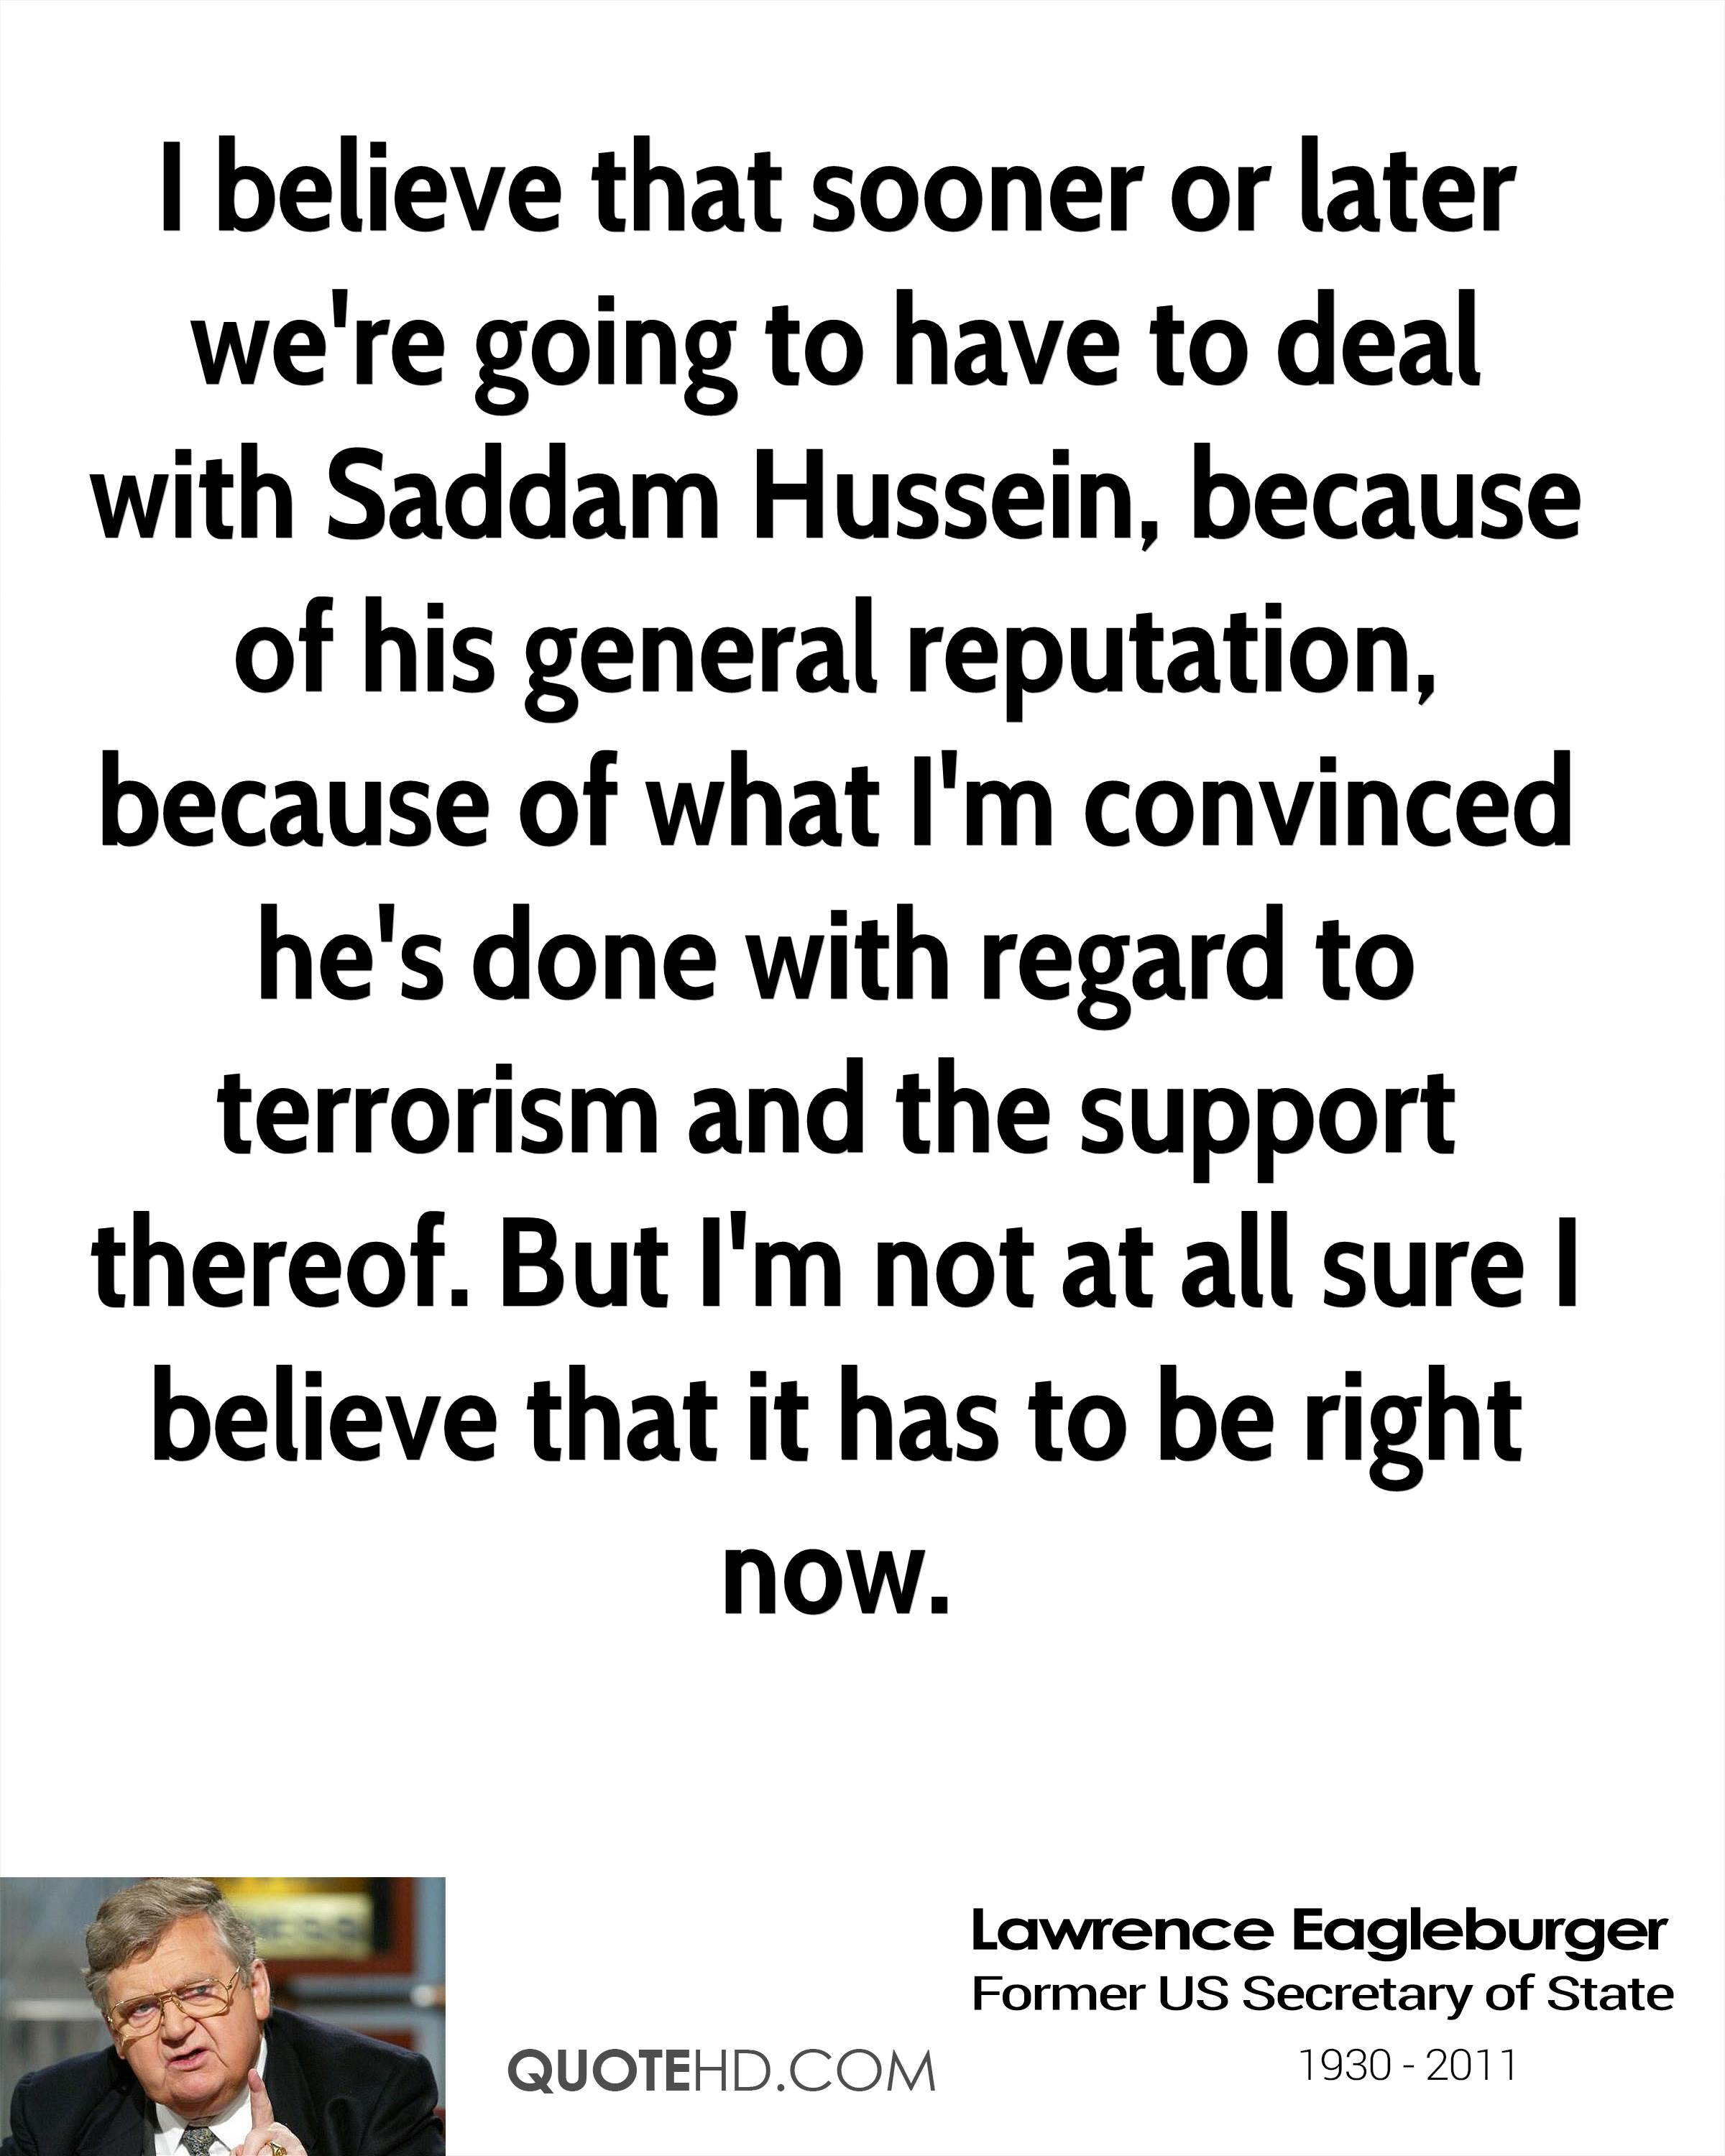 I believe that sooner or later we're going to have to deal with Saddam Hussein, because of his general reputation, because of what I'm convinced he's done with regard to terrorism and the support thereof. But I'm not at all sure I believe that it has to be right now.